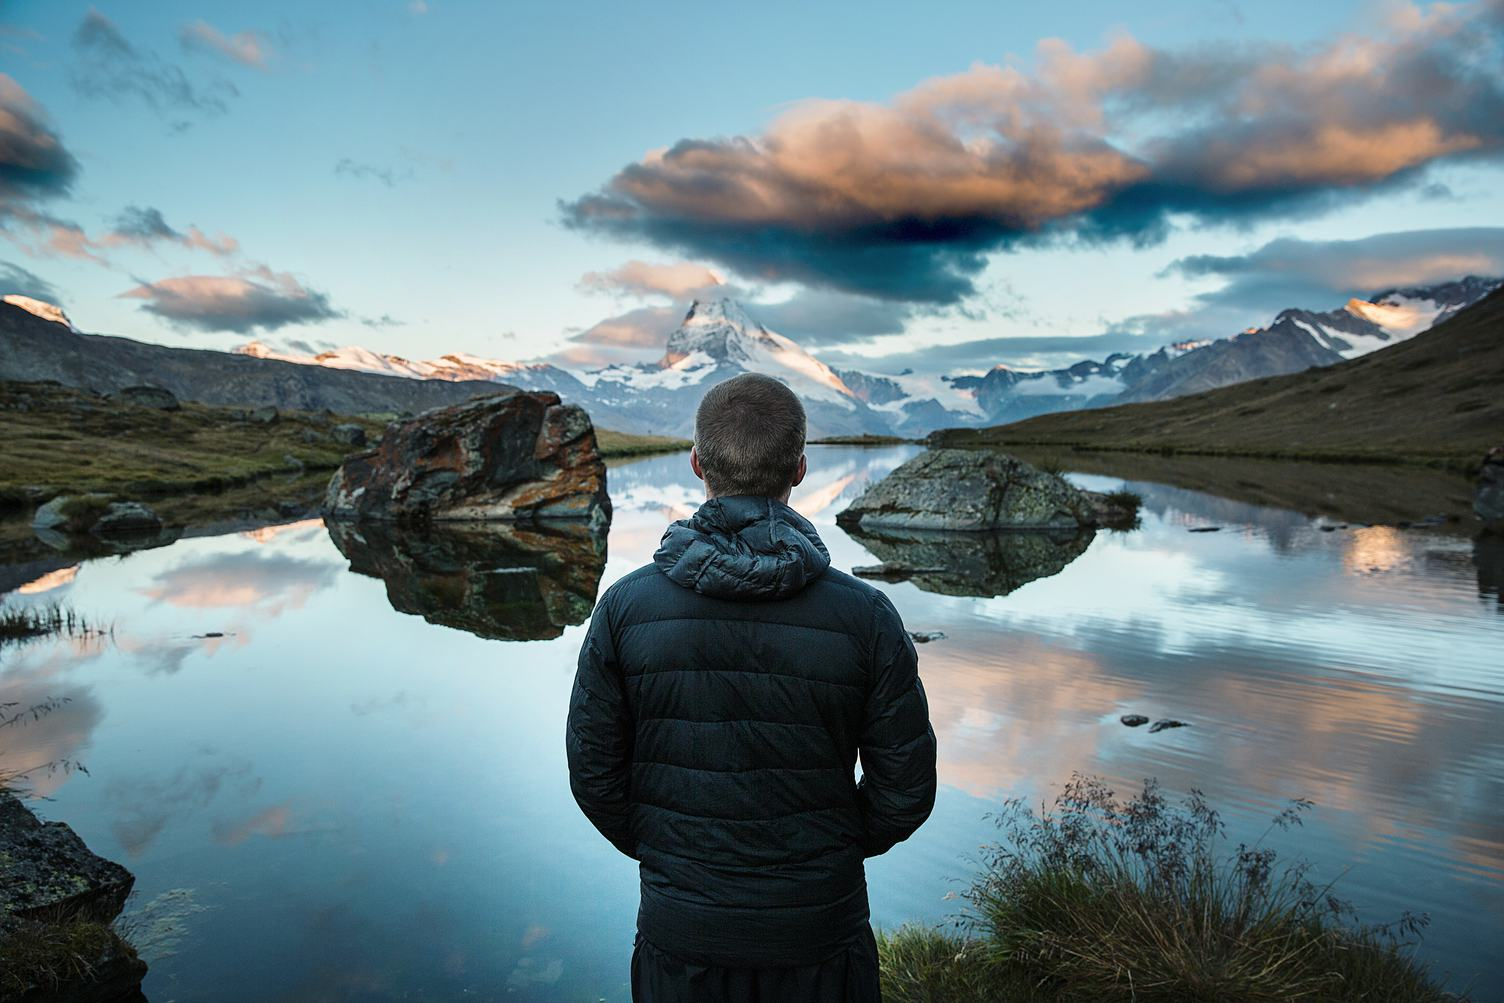 Man Standing and Looking on Peaks Reflecting in Mountain Lake